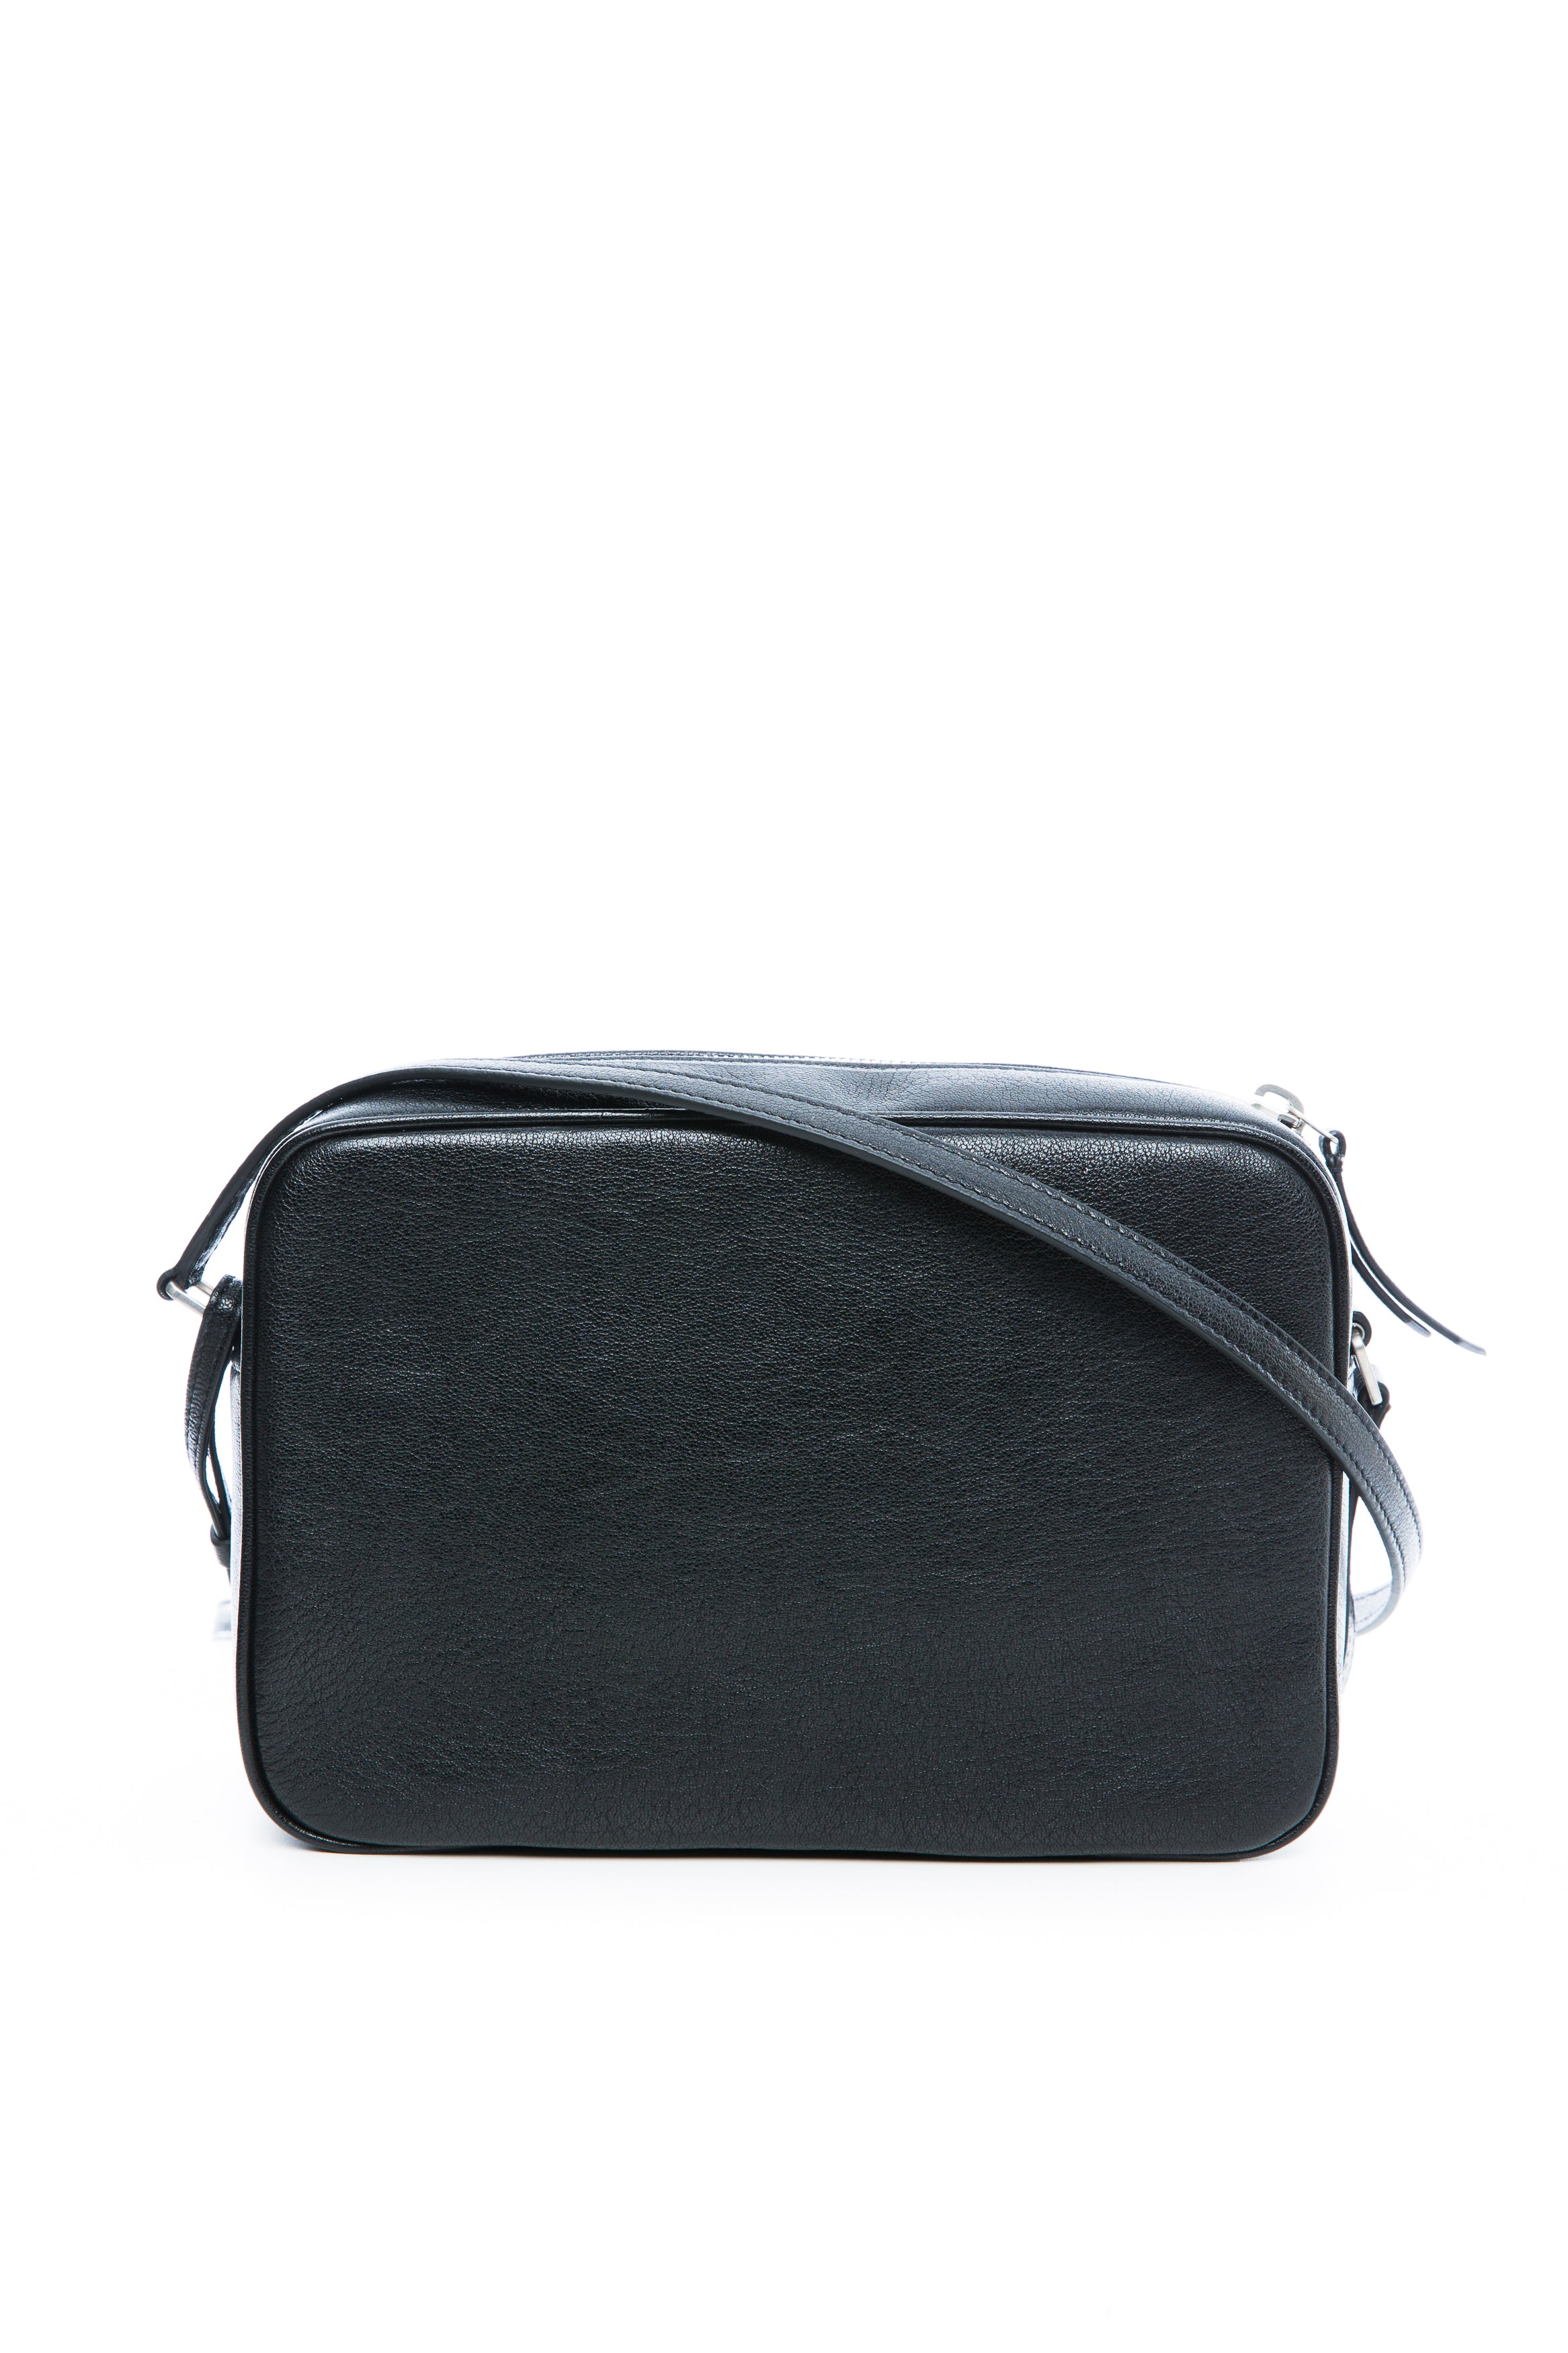 6b86e7b5cd25 SAINT LAURENT LOU CAMERA BAG BLACK – THE STYLE SET